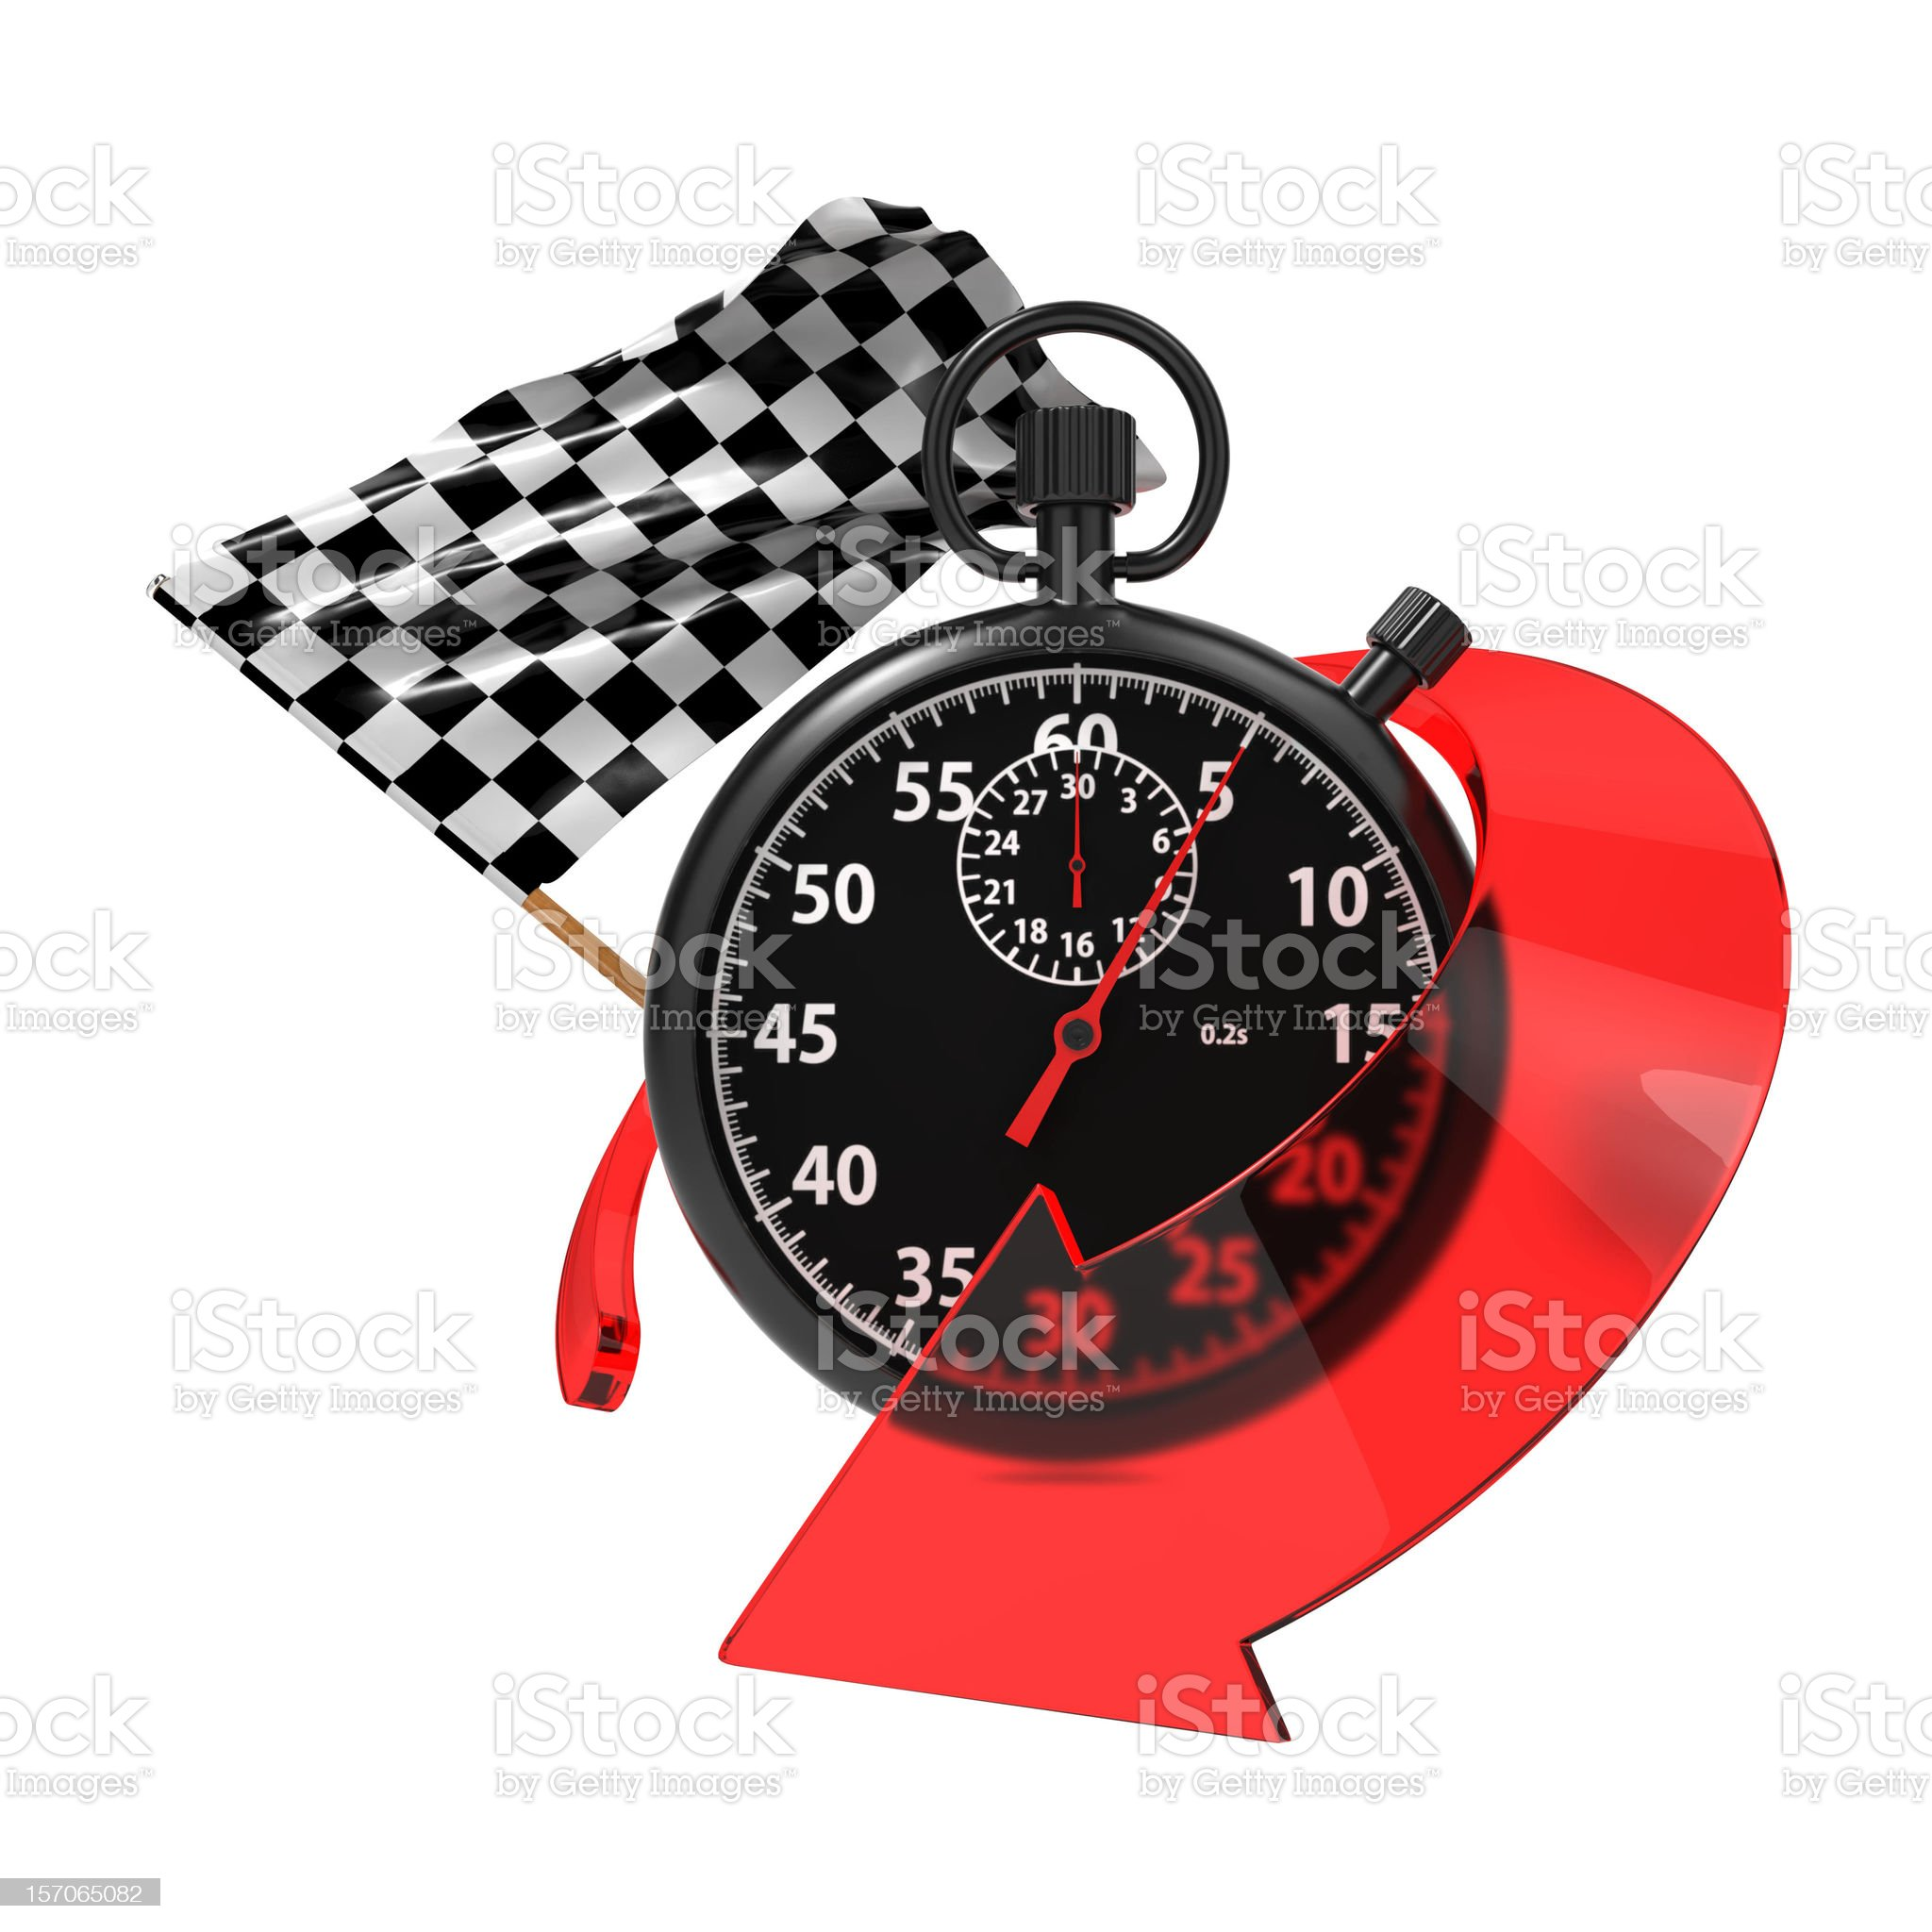 Checkered Flag with Stopwatch and Arrow. royalty-free stock photo